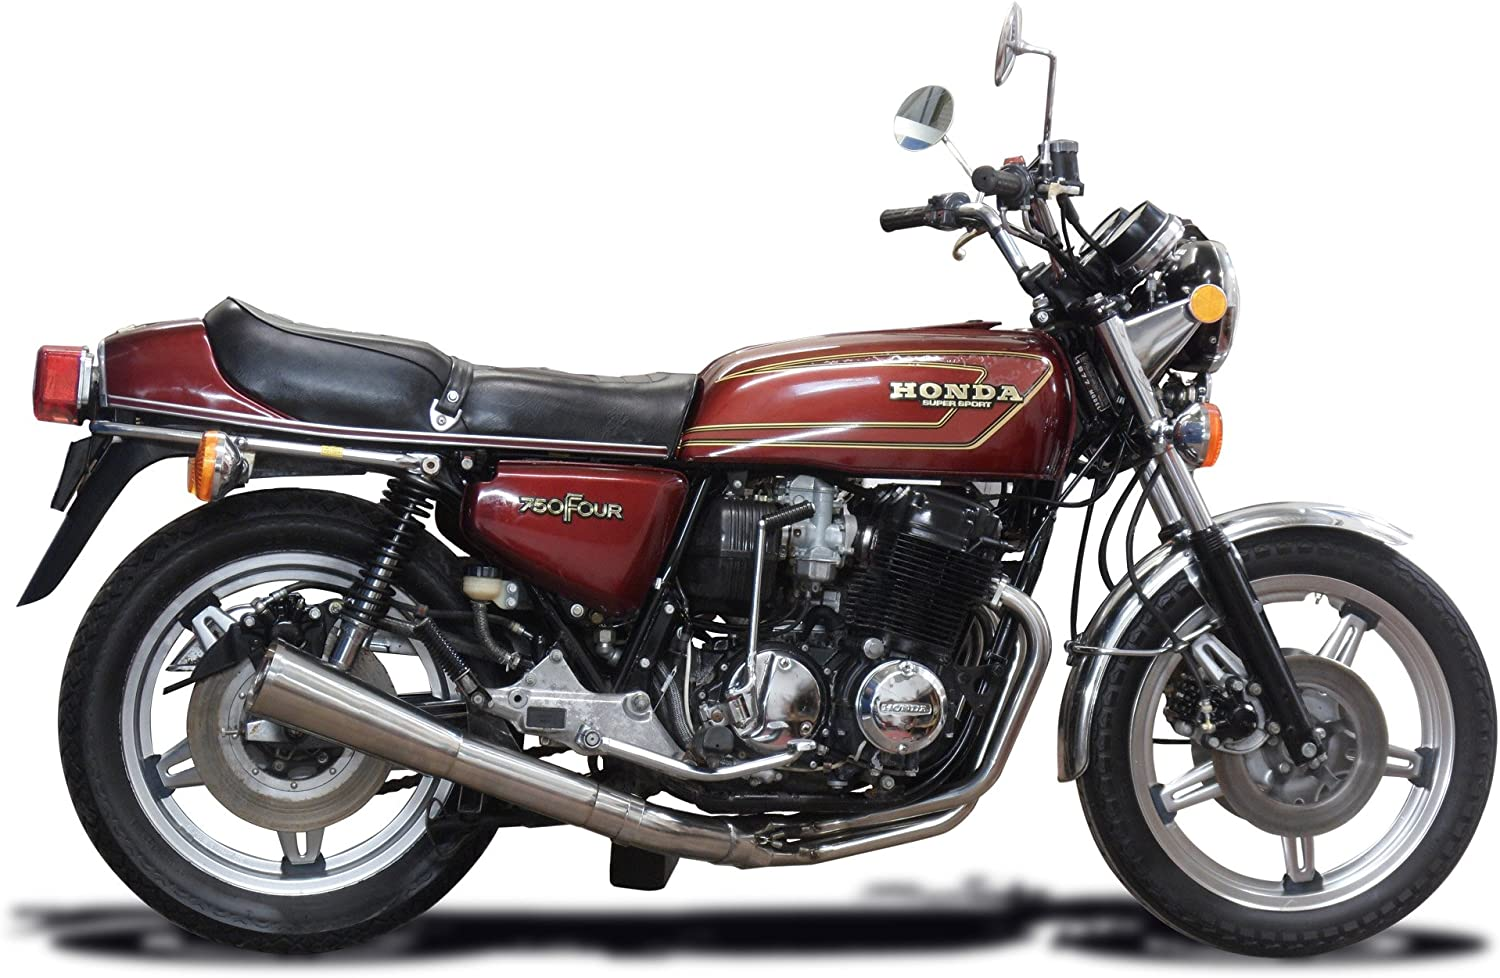 Delkevic Aftermarket Complete System compatible with Honda CB900F with Classic Straight Universal Muffler and Stainless Steel 4-1 Headers 1981-1982